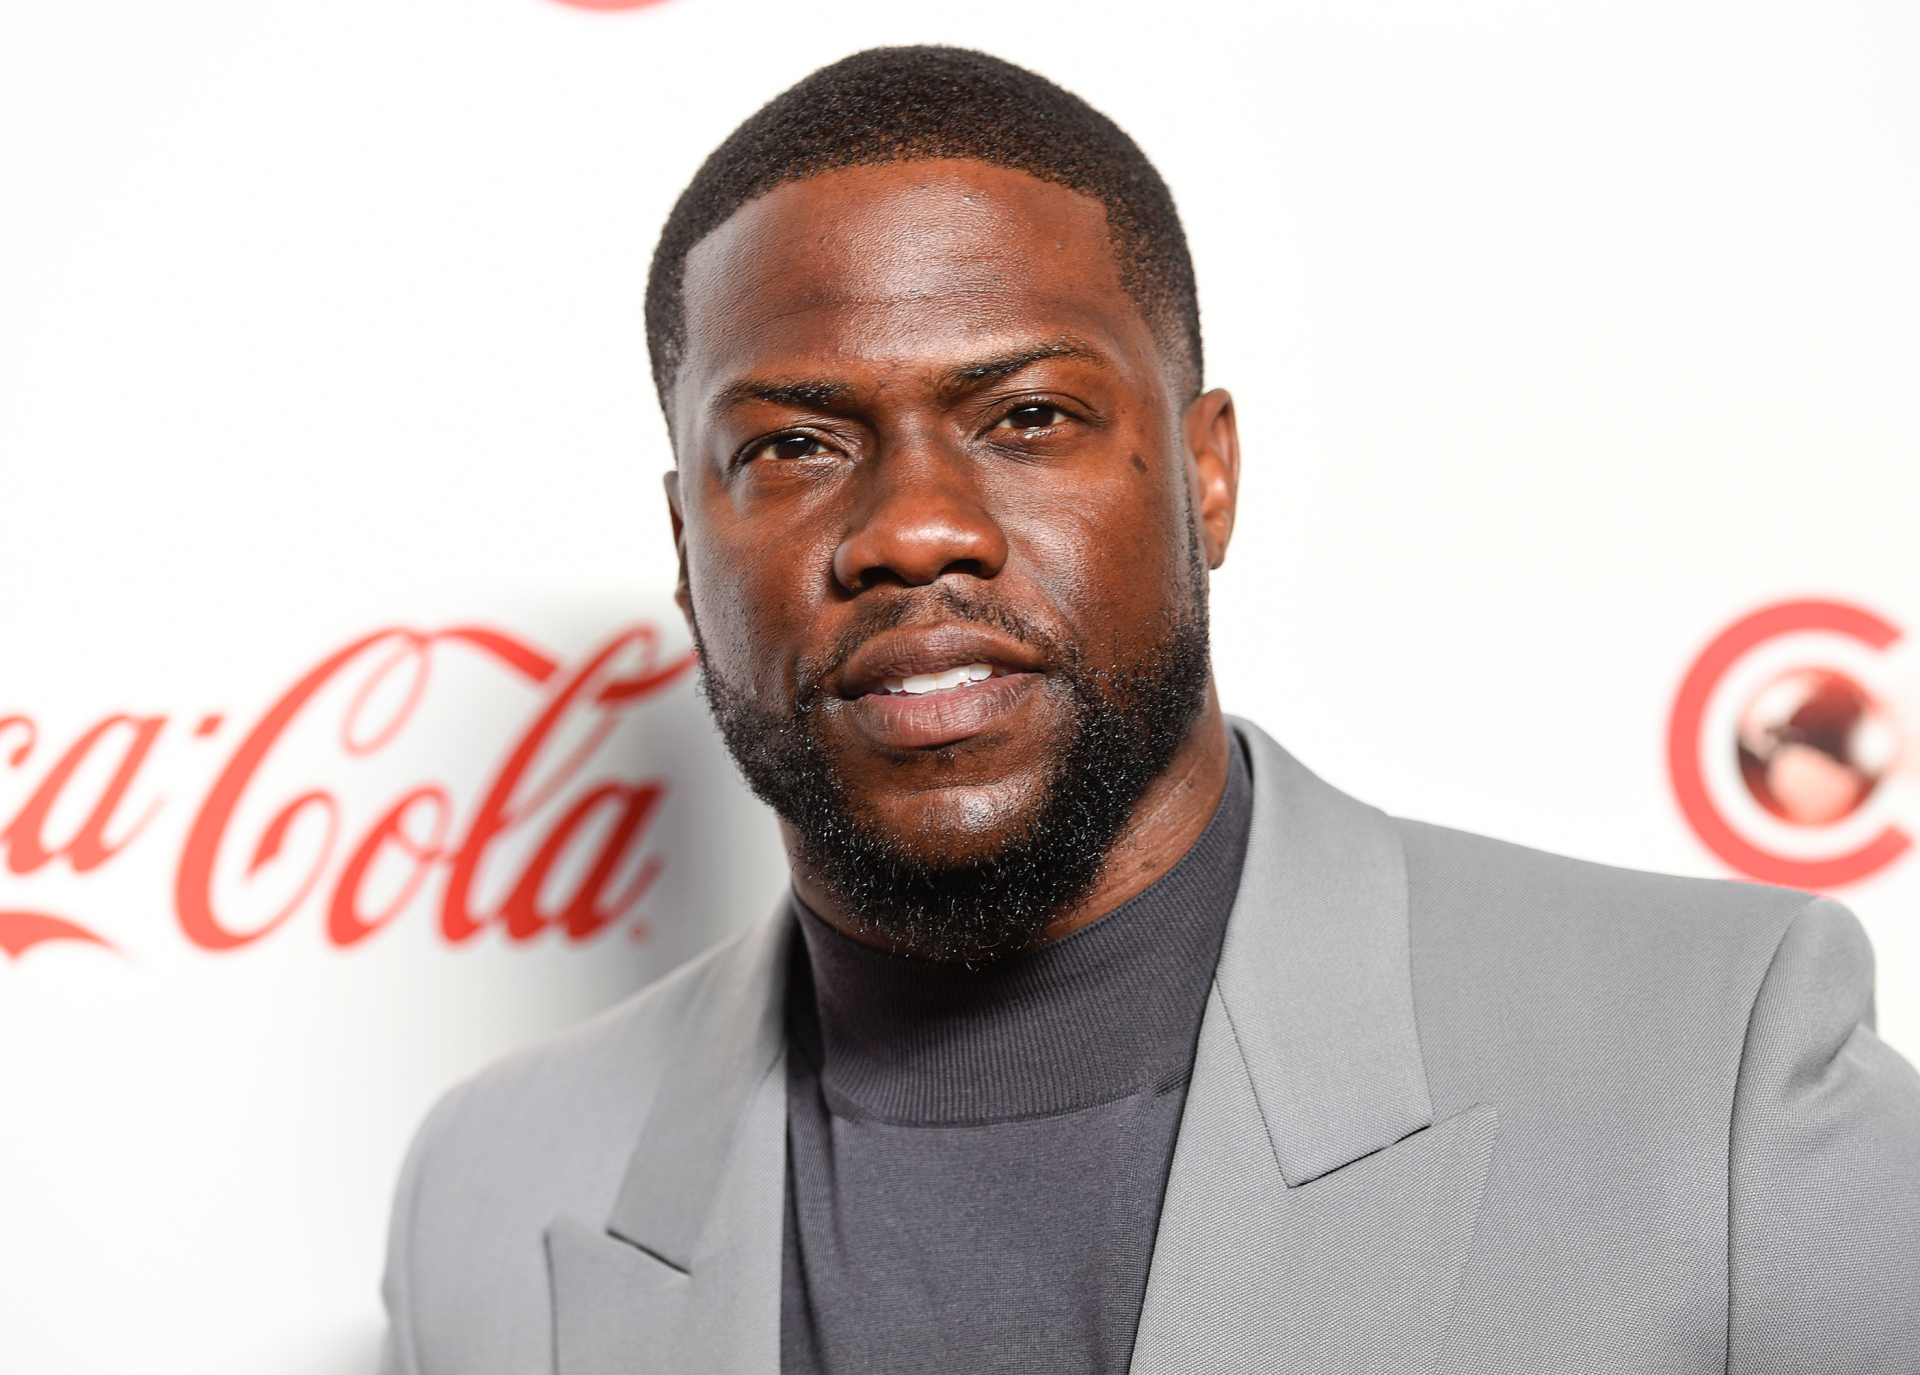 Westlake Legal Group ContentBroker_contentid-baad59daec704fe79e8cd80f9832ff57 Kevin Hart released from hospital after car crash: reports Mariah Haas fox-news/entertainment/genres/comedy fox-news/entertainment/celebrity-news fox news fnc/entertainment fnc article 61e97c4b-59a6-5da6-99ee-ca48b0f883b7